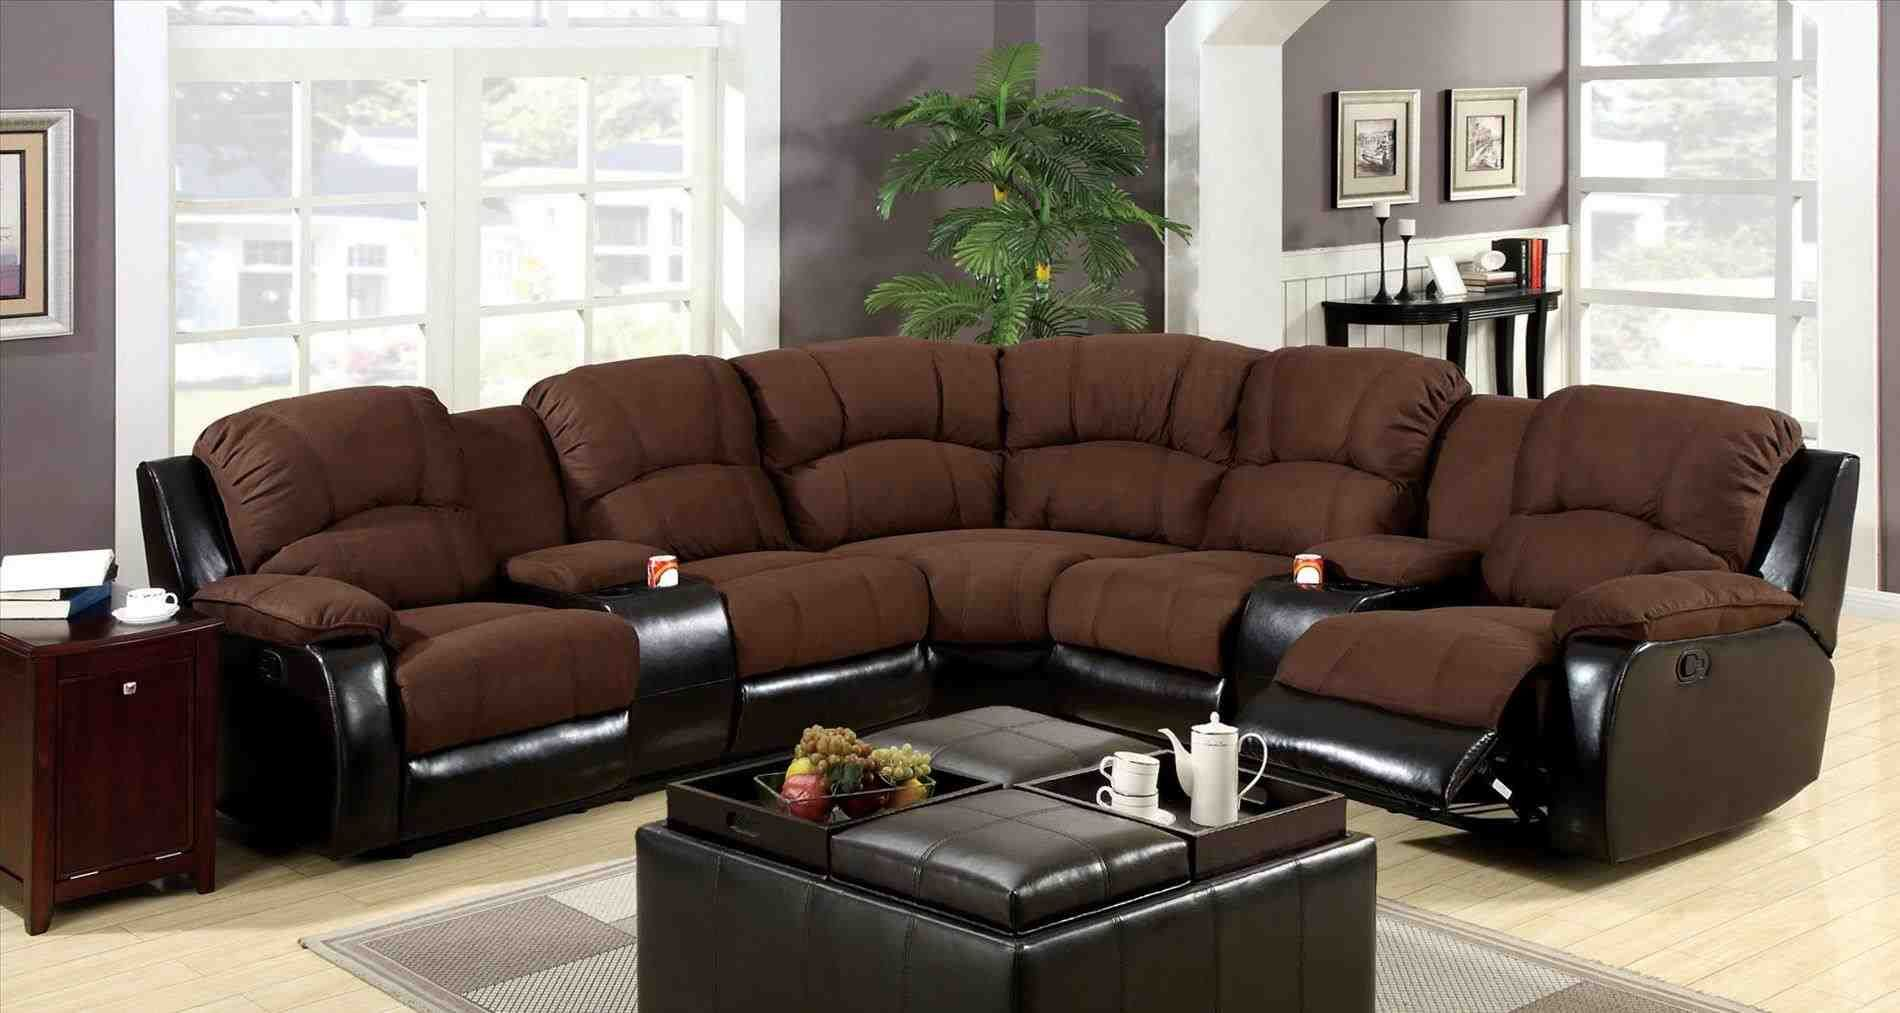 Cheap Sectionals Portland Oregon Sectional Sofa With Recliner Sectional Sofa Couch Sectional Sofa With Chaise